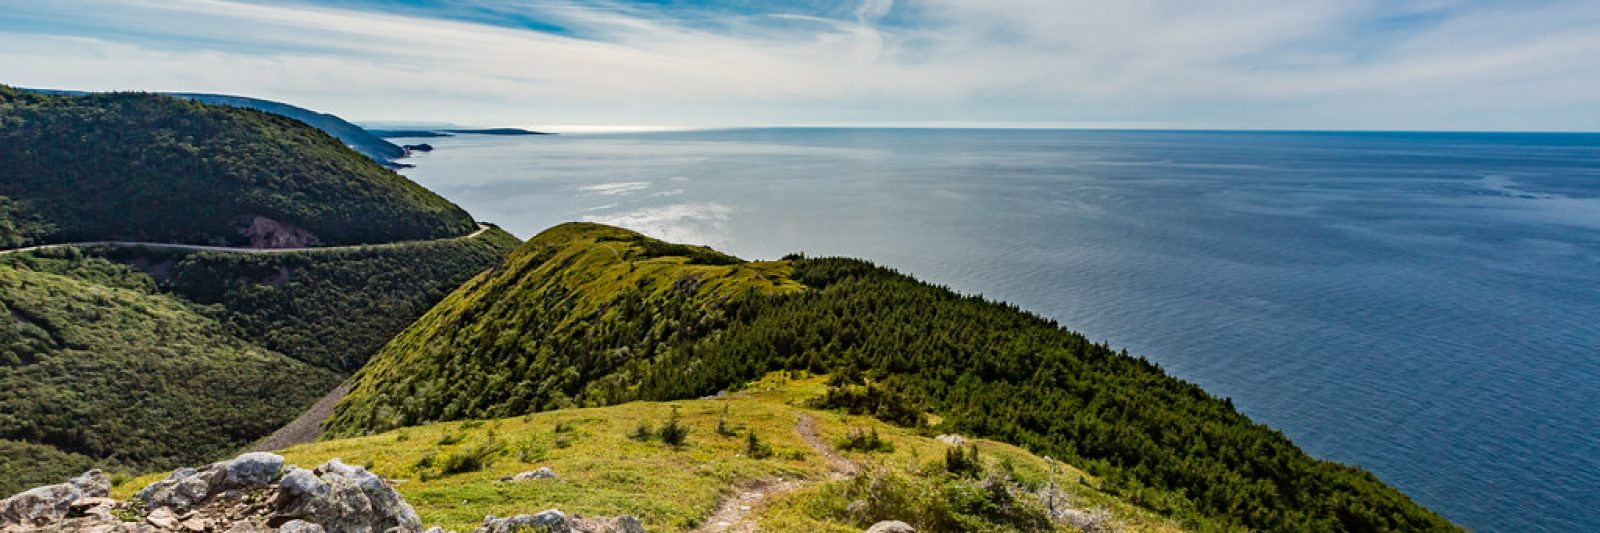 Best Trails and things to do Cabot trail